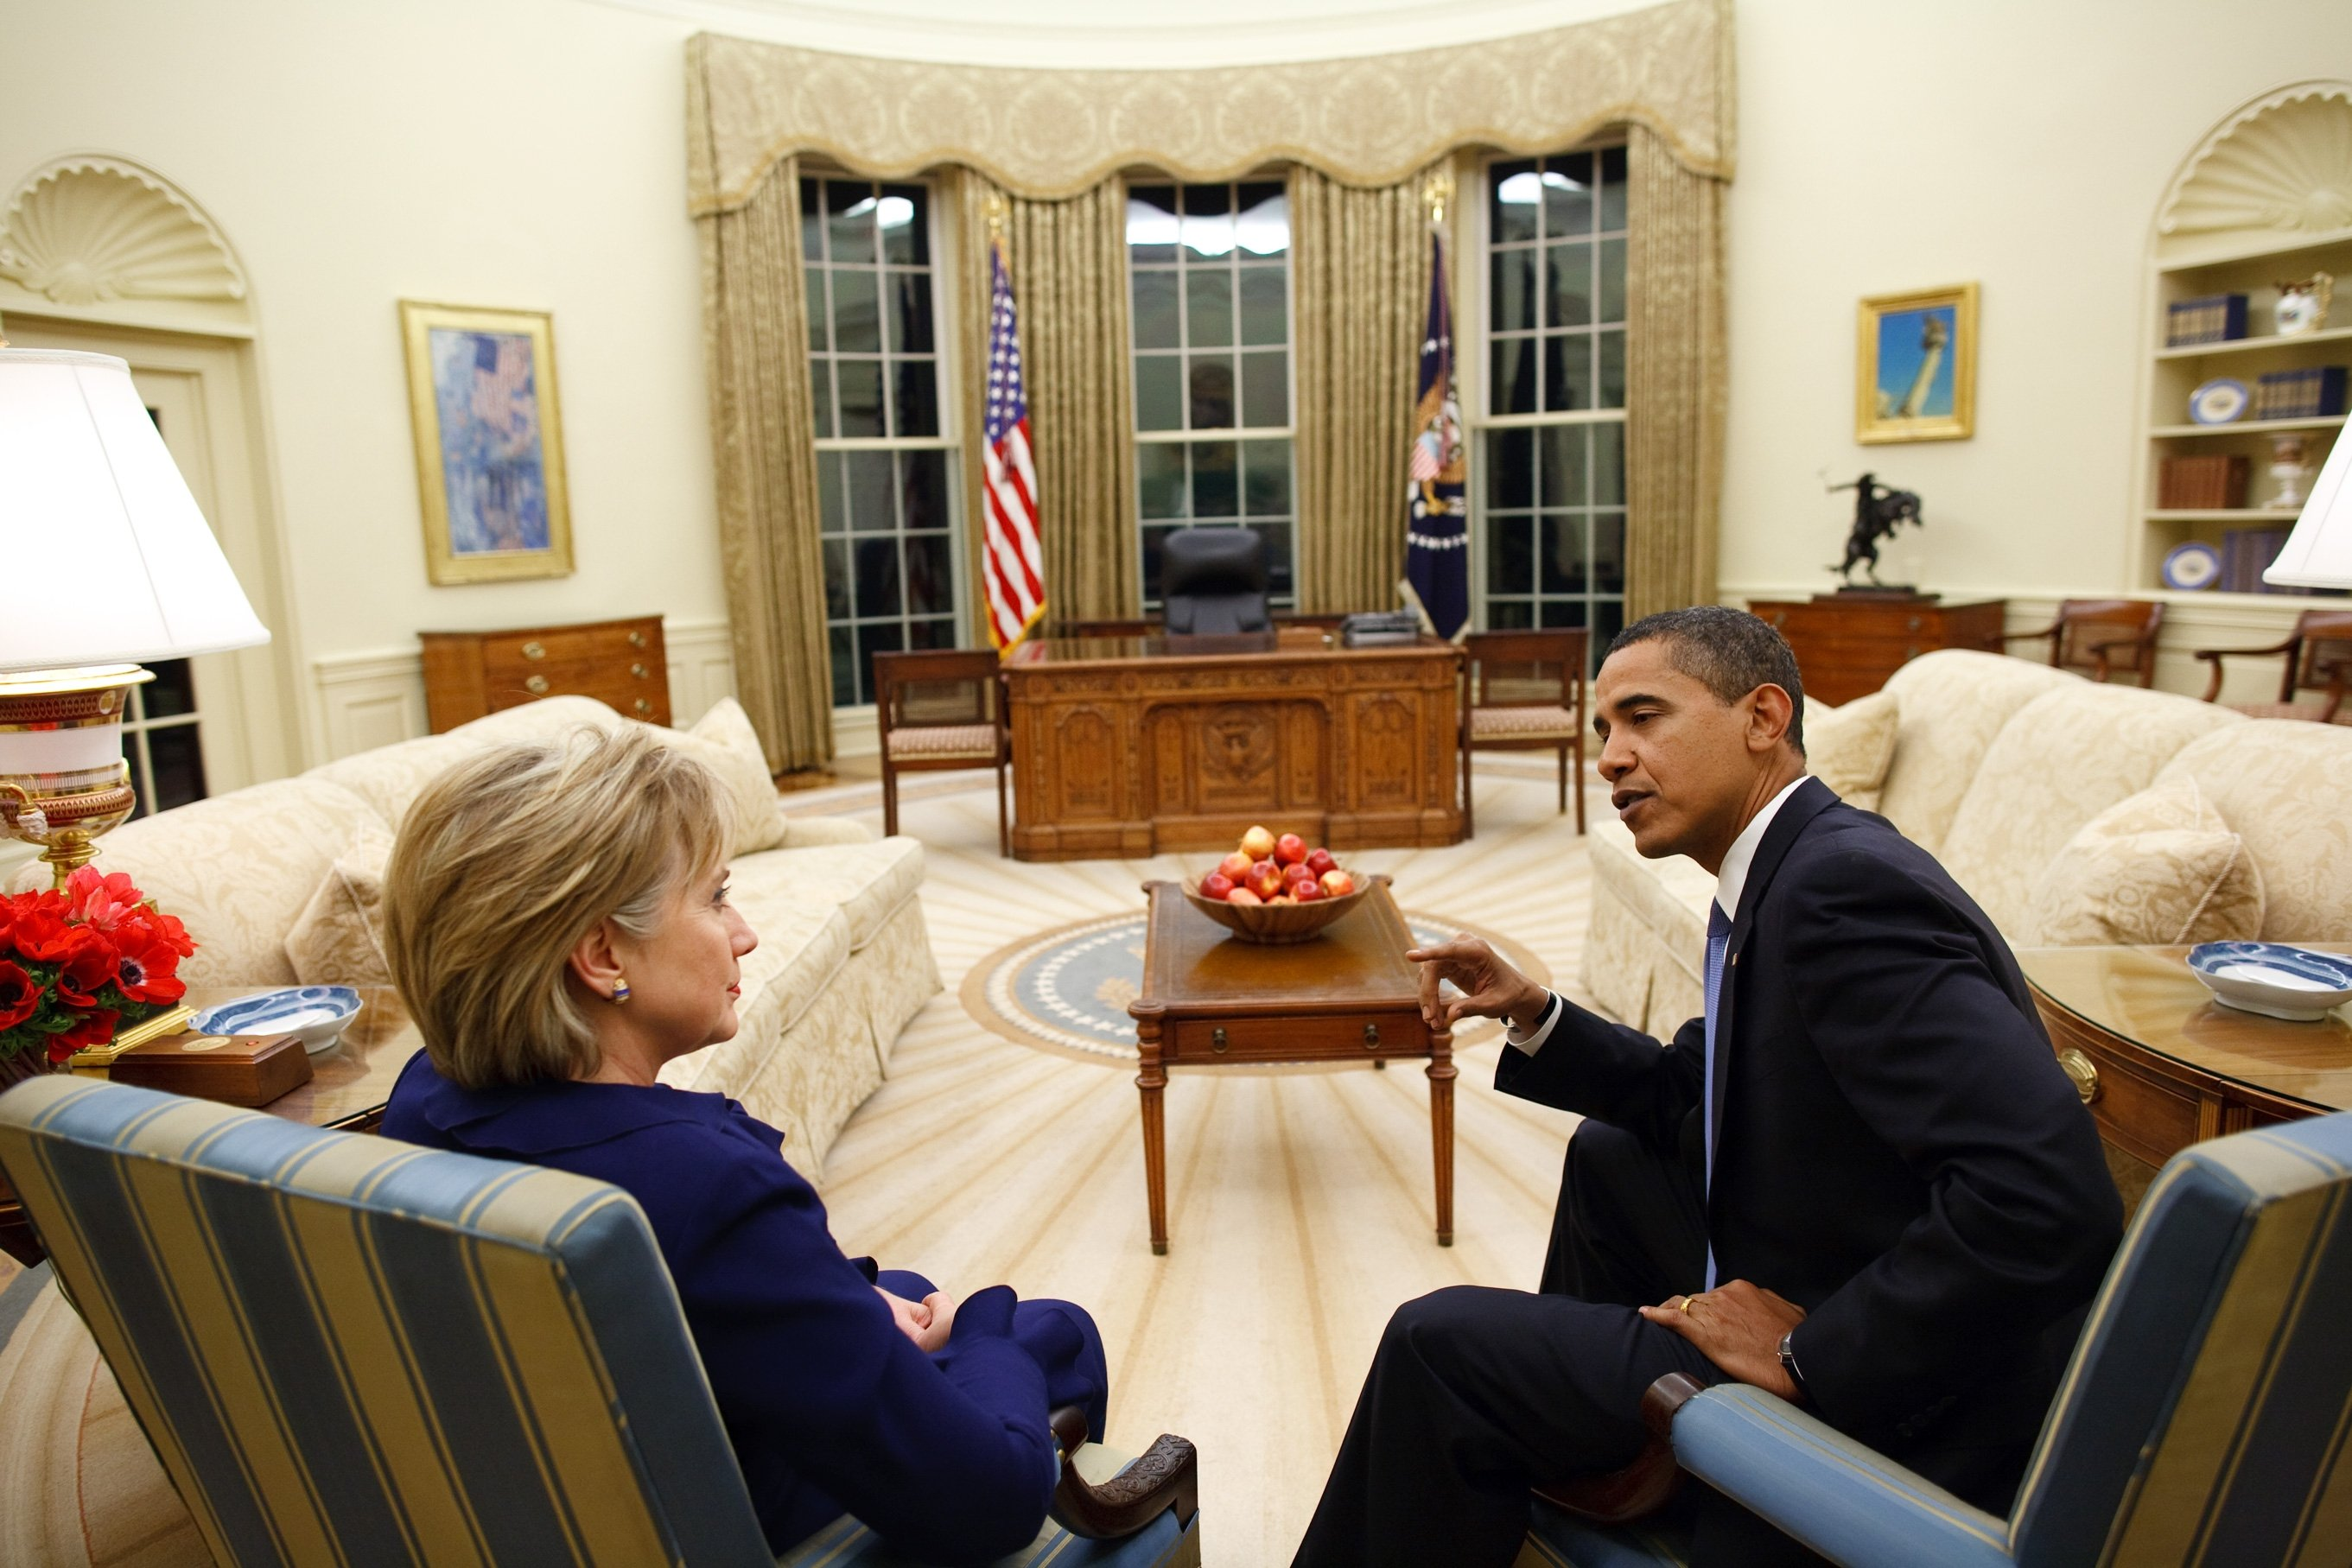 U.S. Secretary of State Hillary Clinton (L) talks with U.S. President Barack Obama shortly after she was confirmed and sworn in, Oval Office of the White House, Washington, D.C., U.S., Jan. 21, 2009. (Photo by Getty Images)